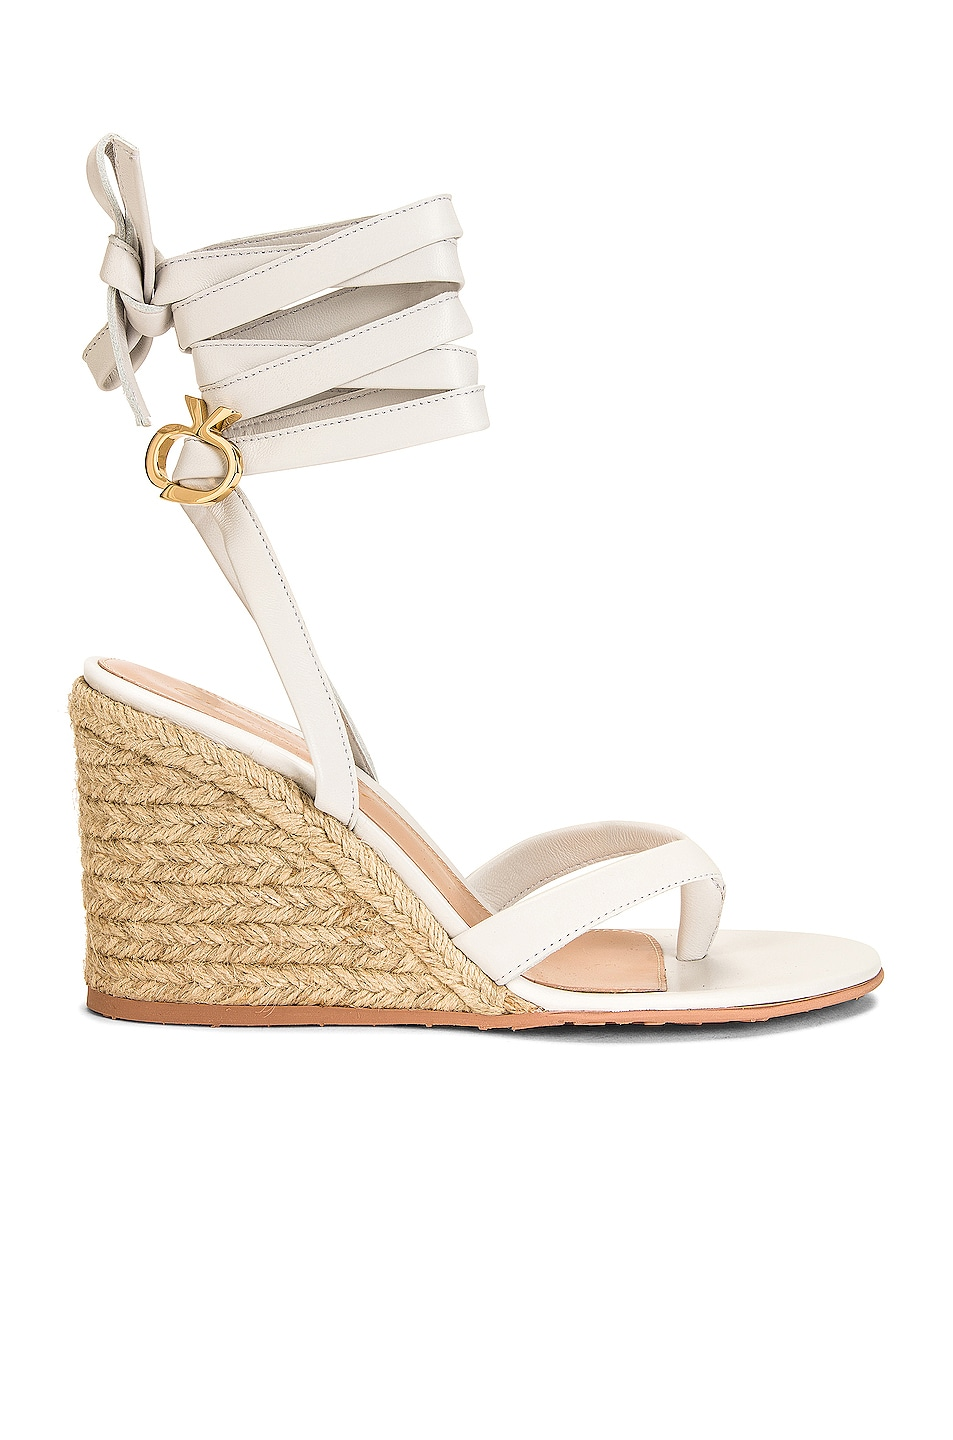 Image 1 of Gianvito Rossi Strappy Espadrille Wedges in White & Naturale